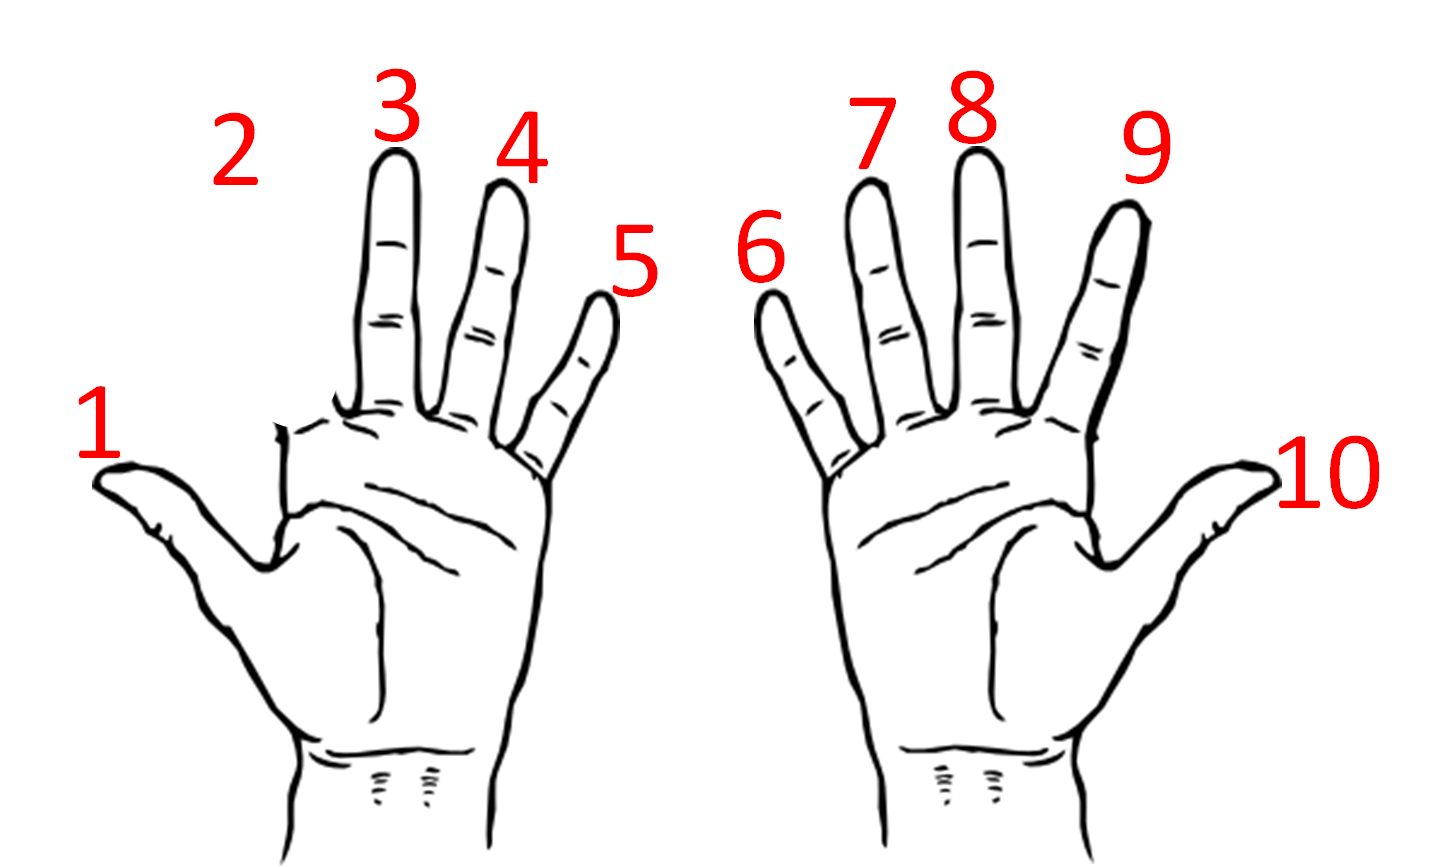 Index of /1_Content/2_Images/9 times table Fingers